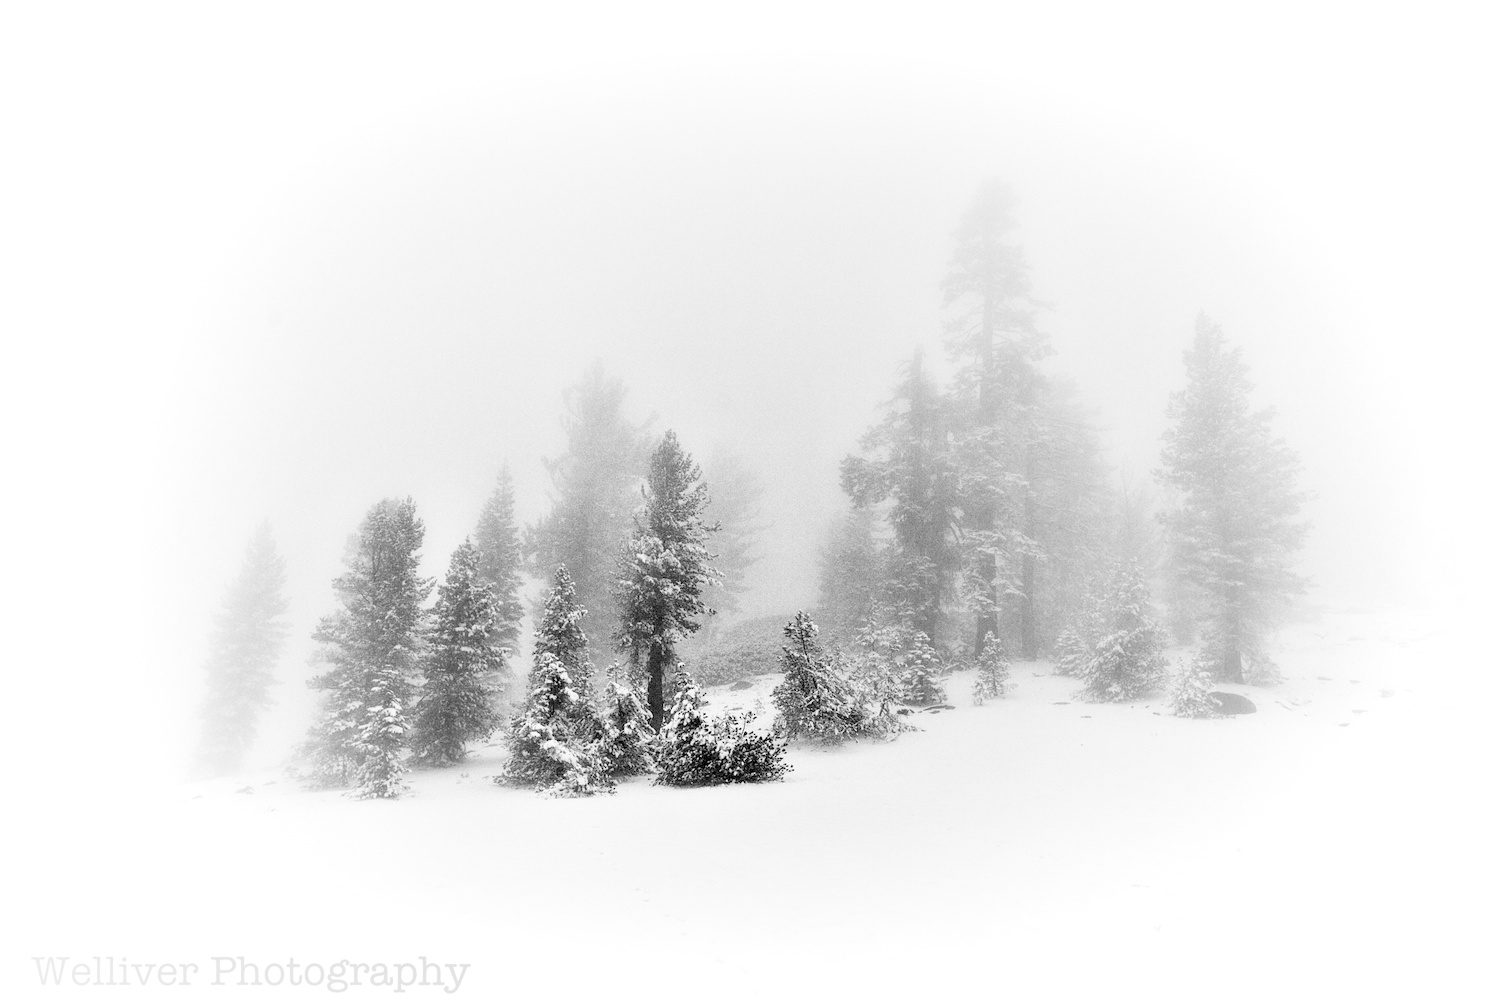 Kaiser Wilderness: Snowy Scene by Terry.